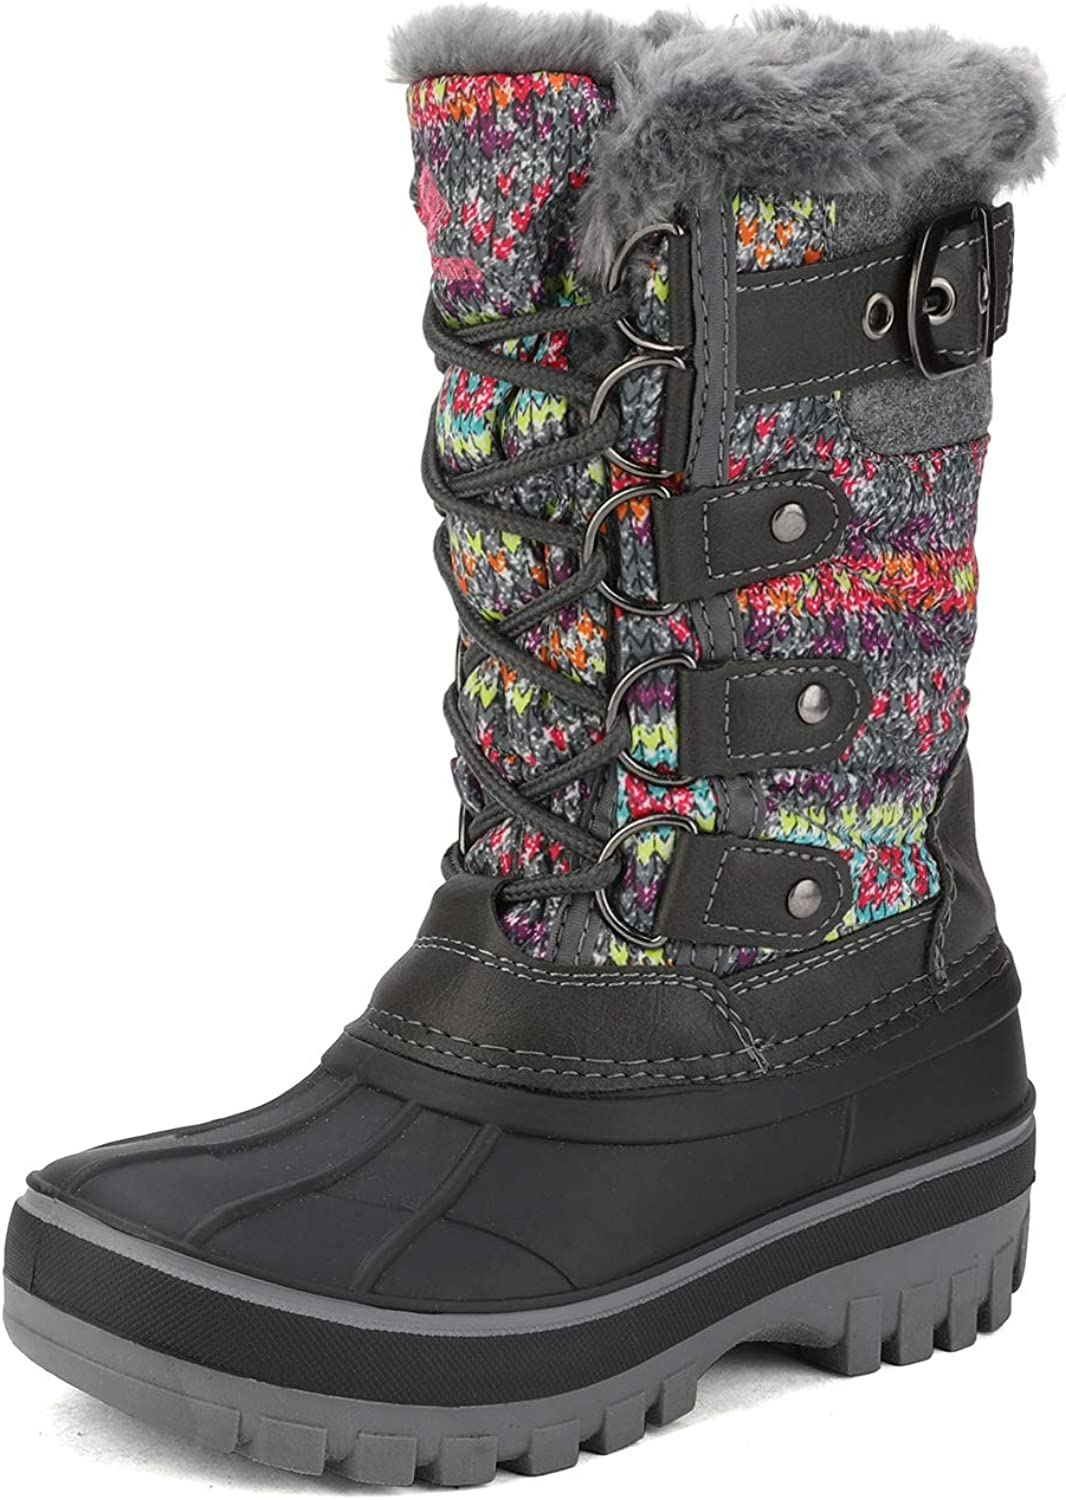 DREAM PAIRS Kids Insulated Waterproof Warm Winter Snow Boots Grey Multi Size Size 4 Big Kid